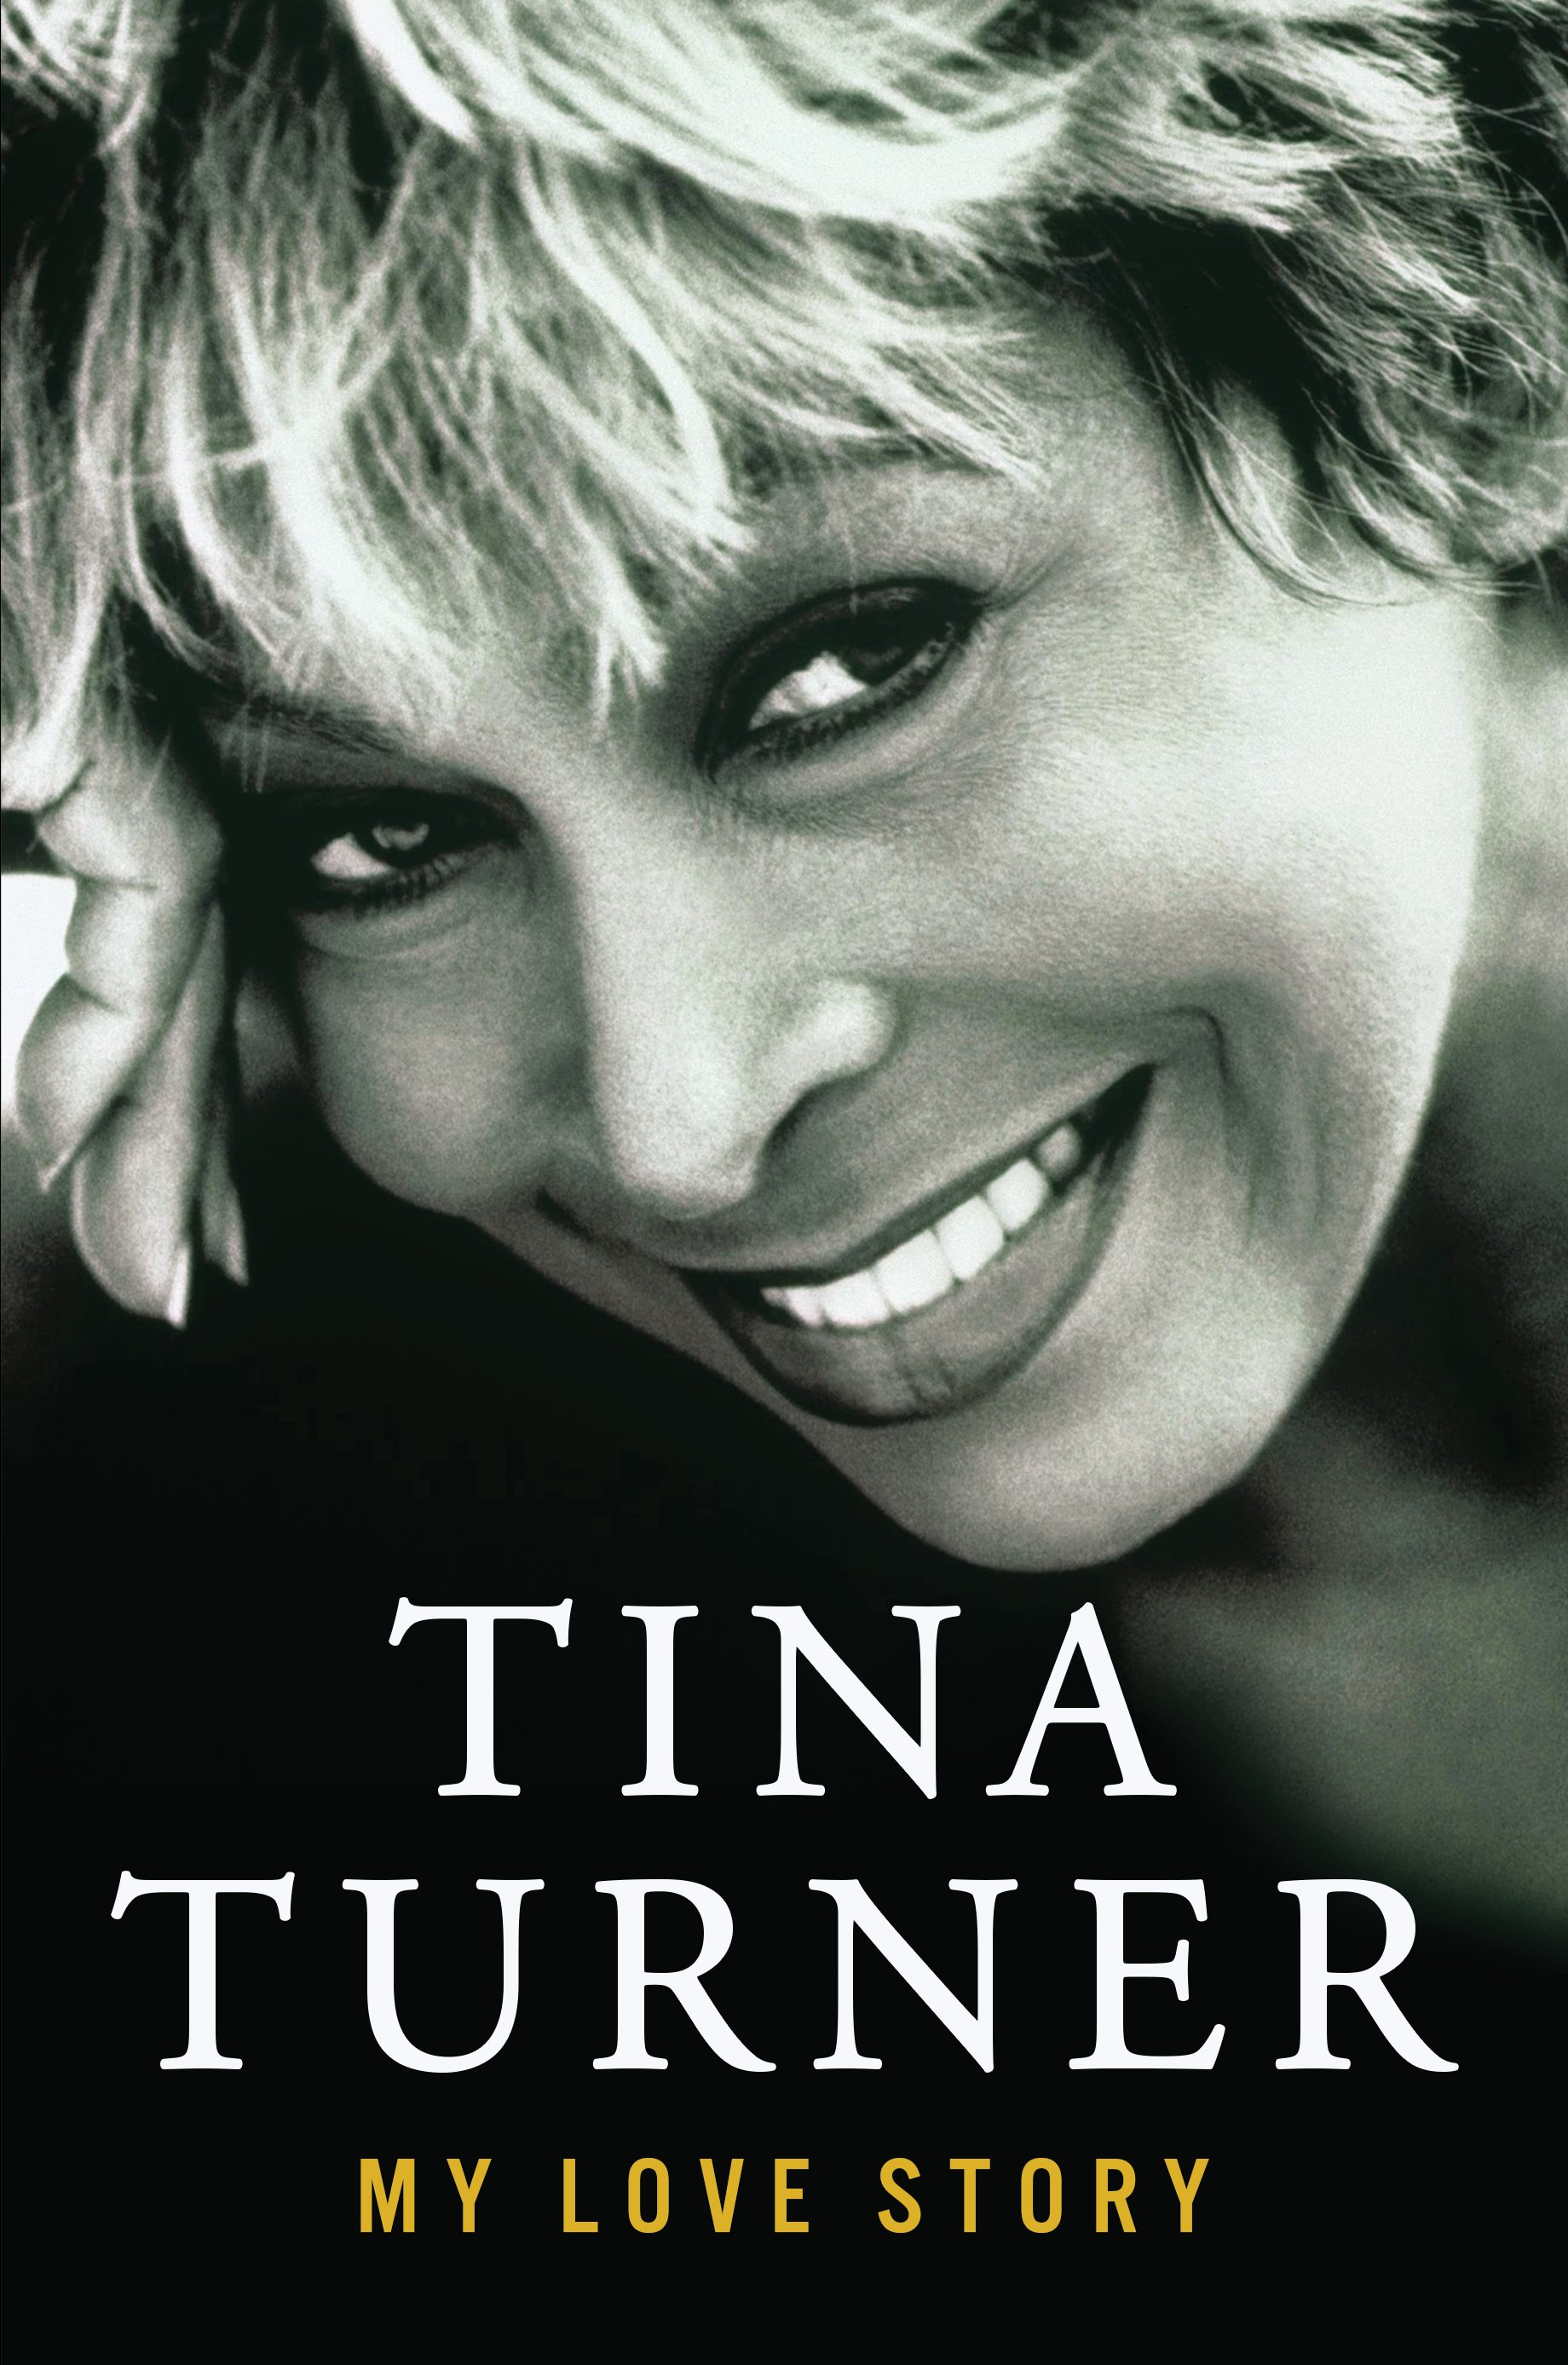 My Love Story By Tina Turner With Deborah Davis And Dominik Wichmann Houston Style